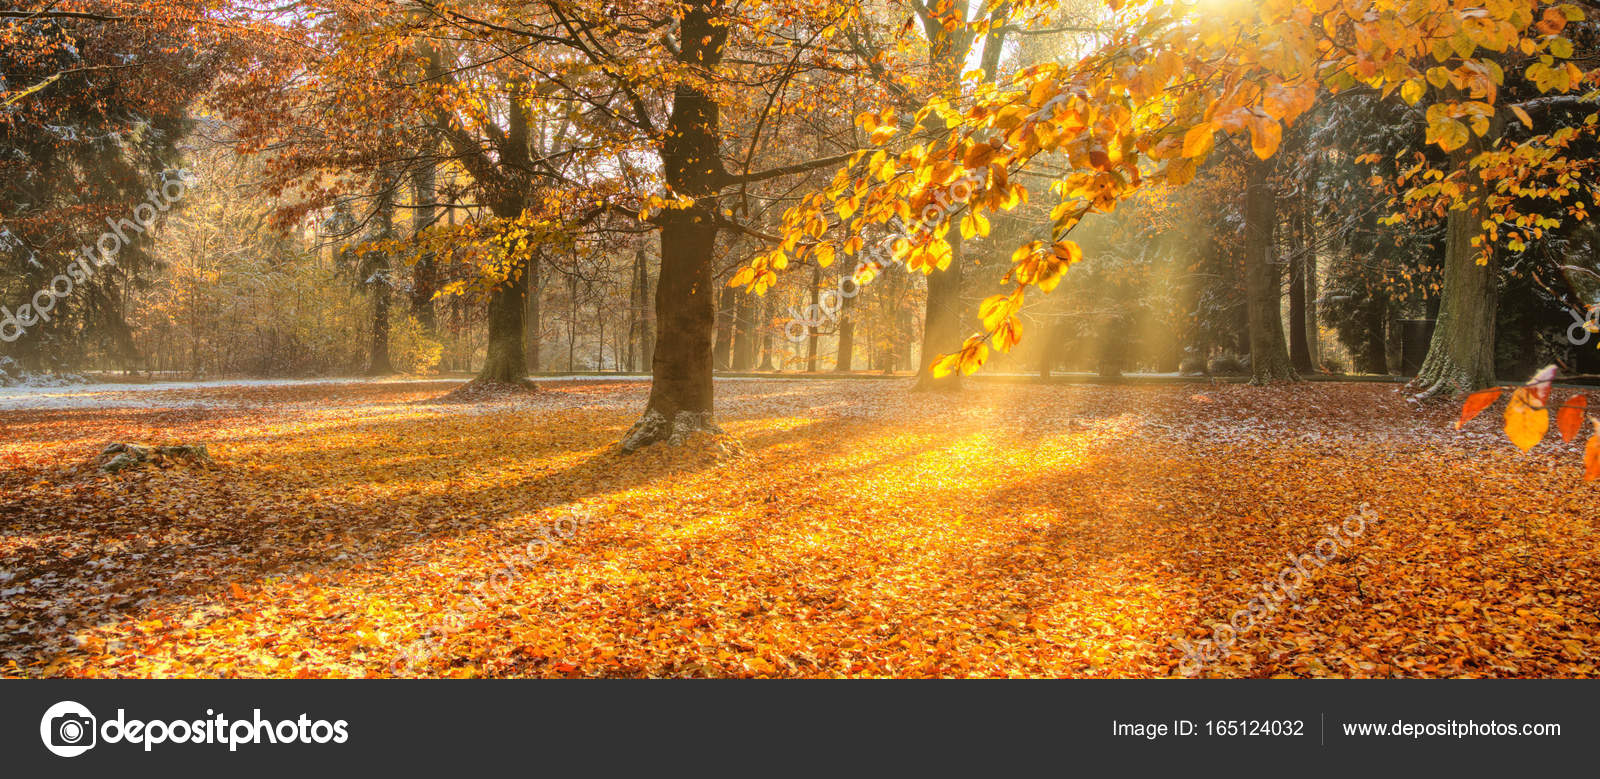 outdoor nature photography. Beautiful Colored Trees In Autumn, Landscape Photography. Snow On Background. Late Autumn And Early Winter Period. Outdoor Nature. \u2014 Photo By Jag_cz Nature Photography